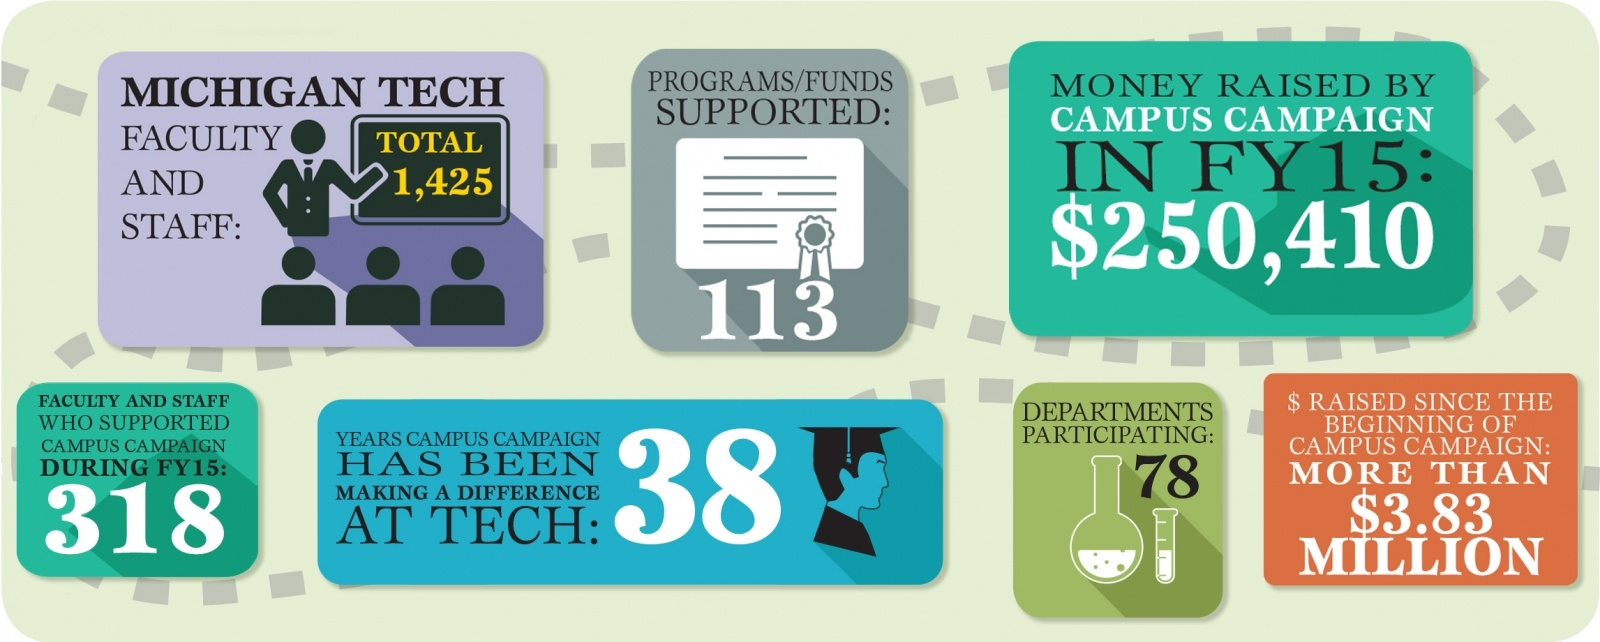 Statistics for the campus campaign in FY 2015. Stats are as follows. There are 1,425 Michigan Tech faculty and staff. 318 of whom supported the campus campaign during FY15. 78 departments participated. 113 programs and funds were supported. The campus campaign has been making a difference at Tech for 38 years. It has raised more than $3.83 million dollars in that time.